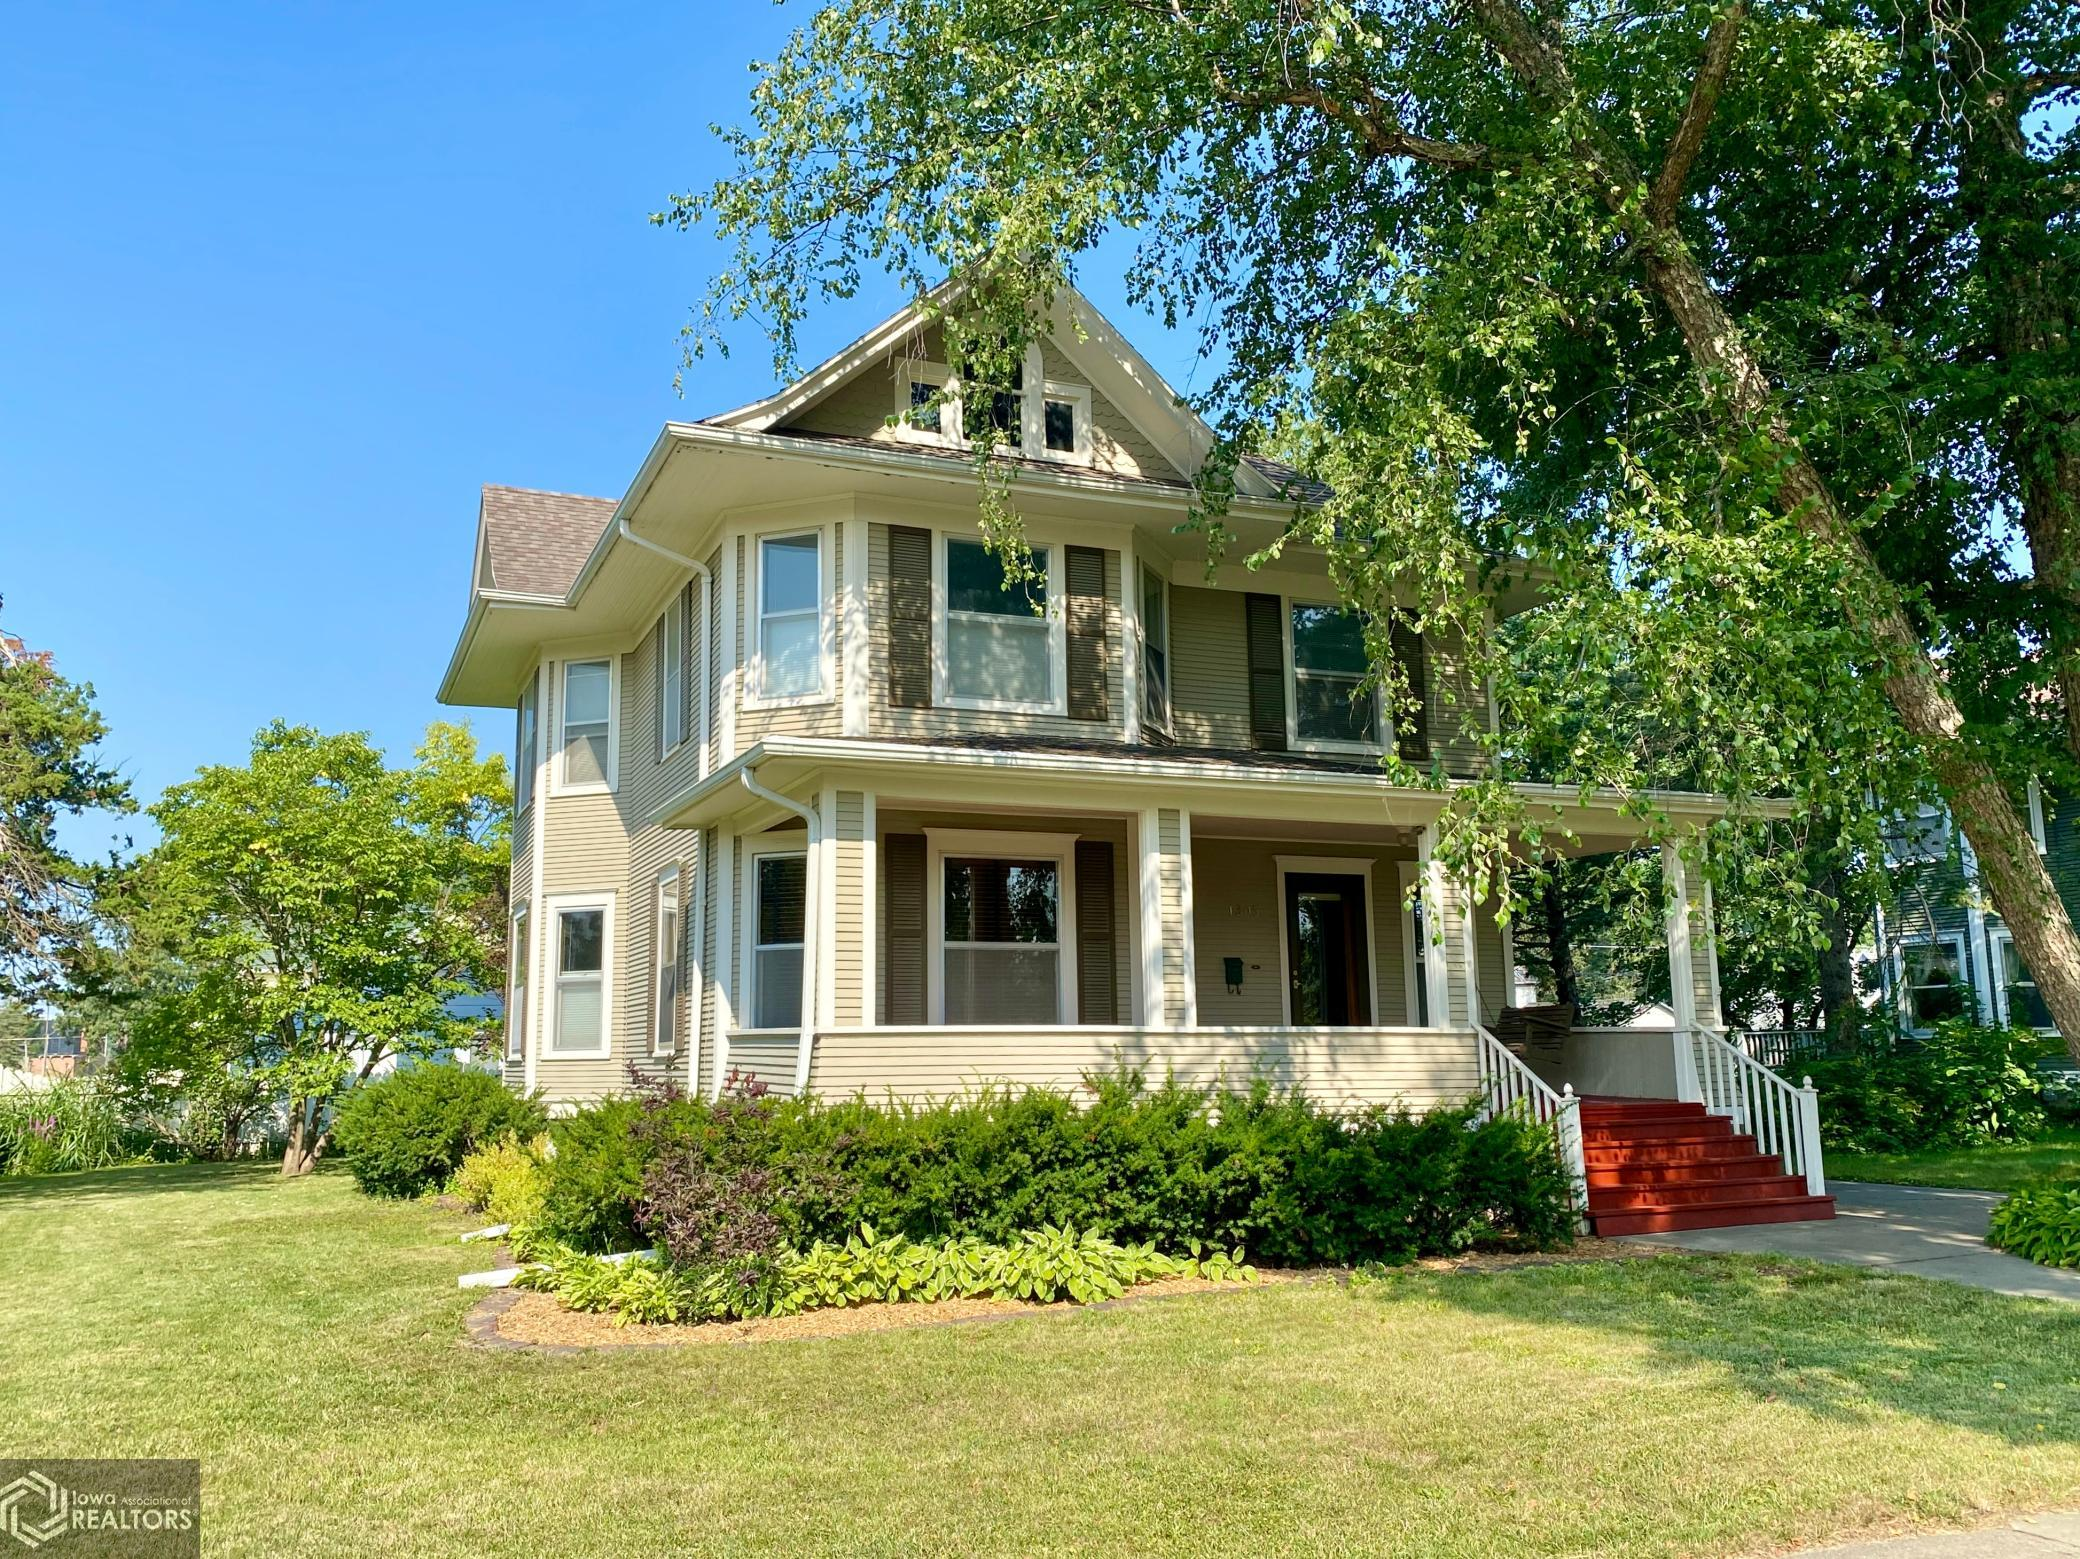 1305 Summer, Grinnell, Iowa 50112-1549, 4 Bedrooms Bedrooms, ,2 BathroomsBathrooms,Single Family,For Sale,Summer,6083752